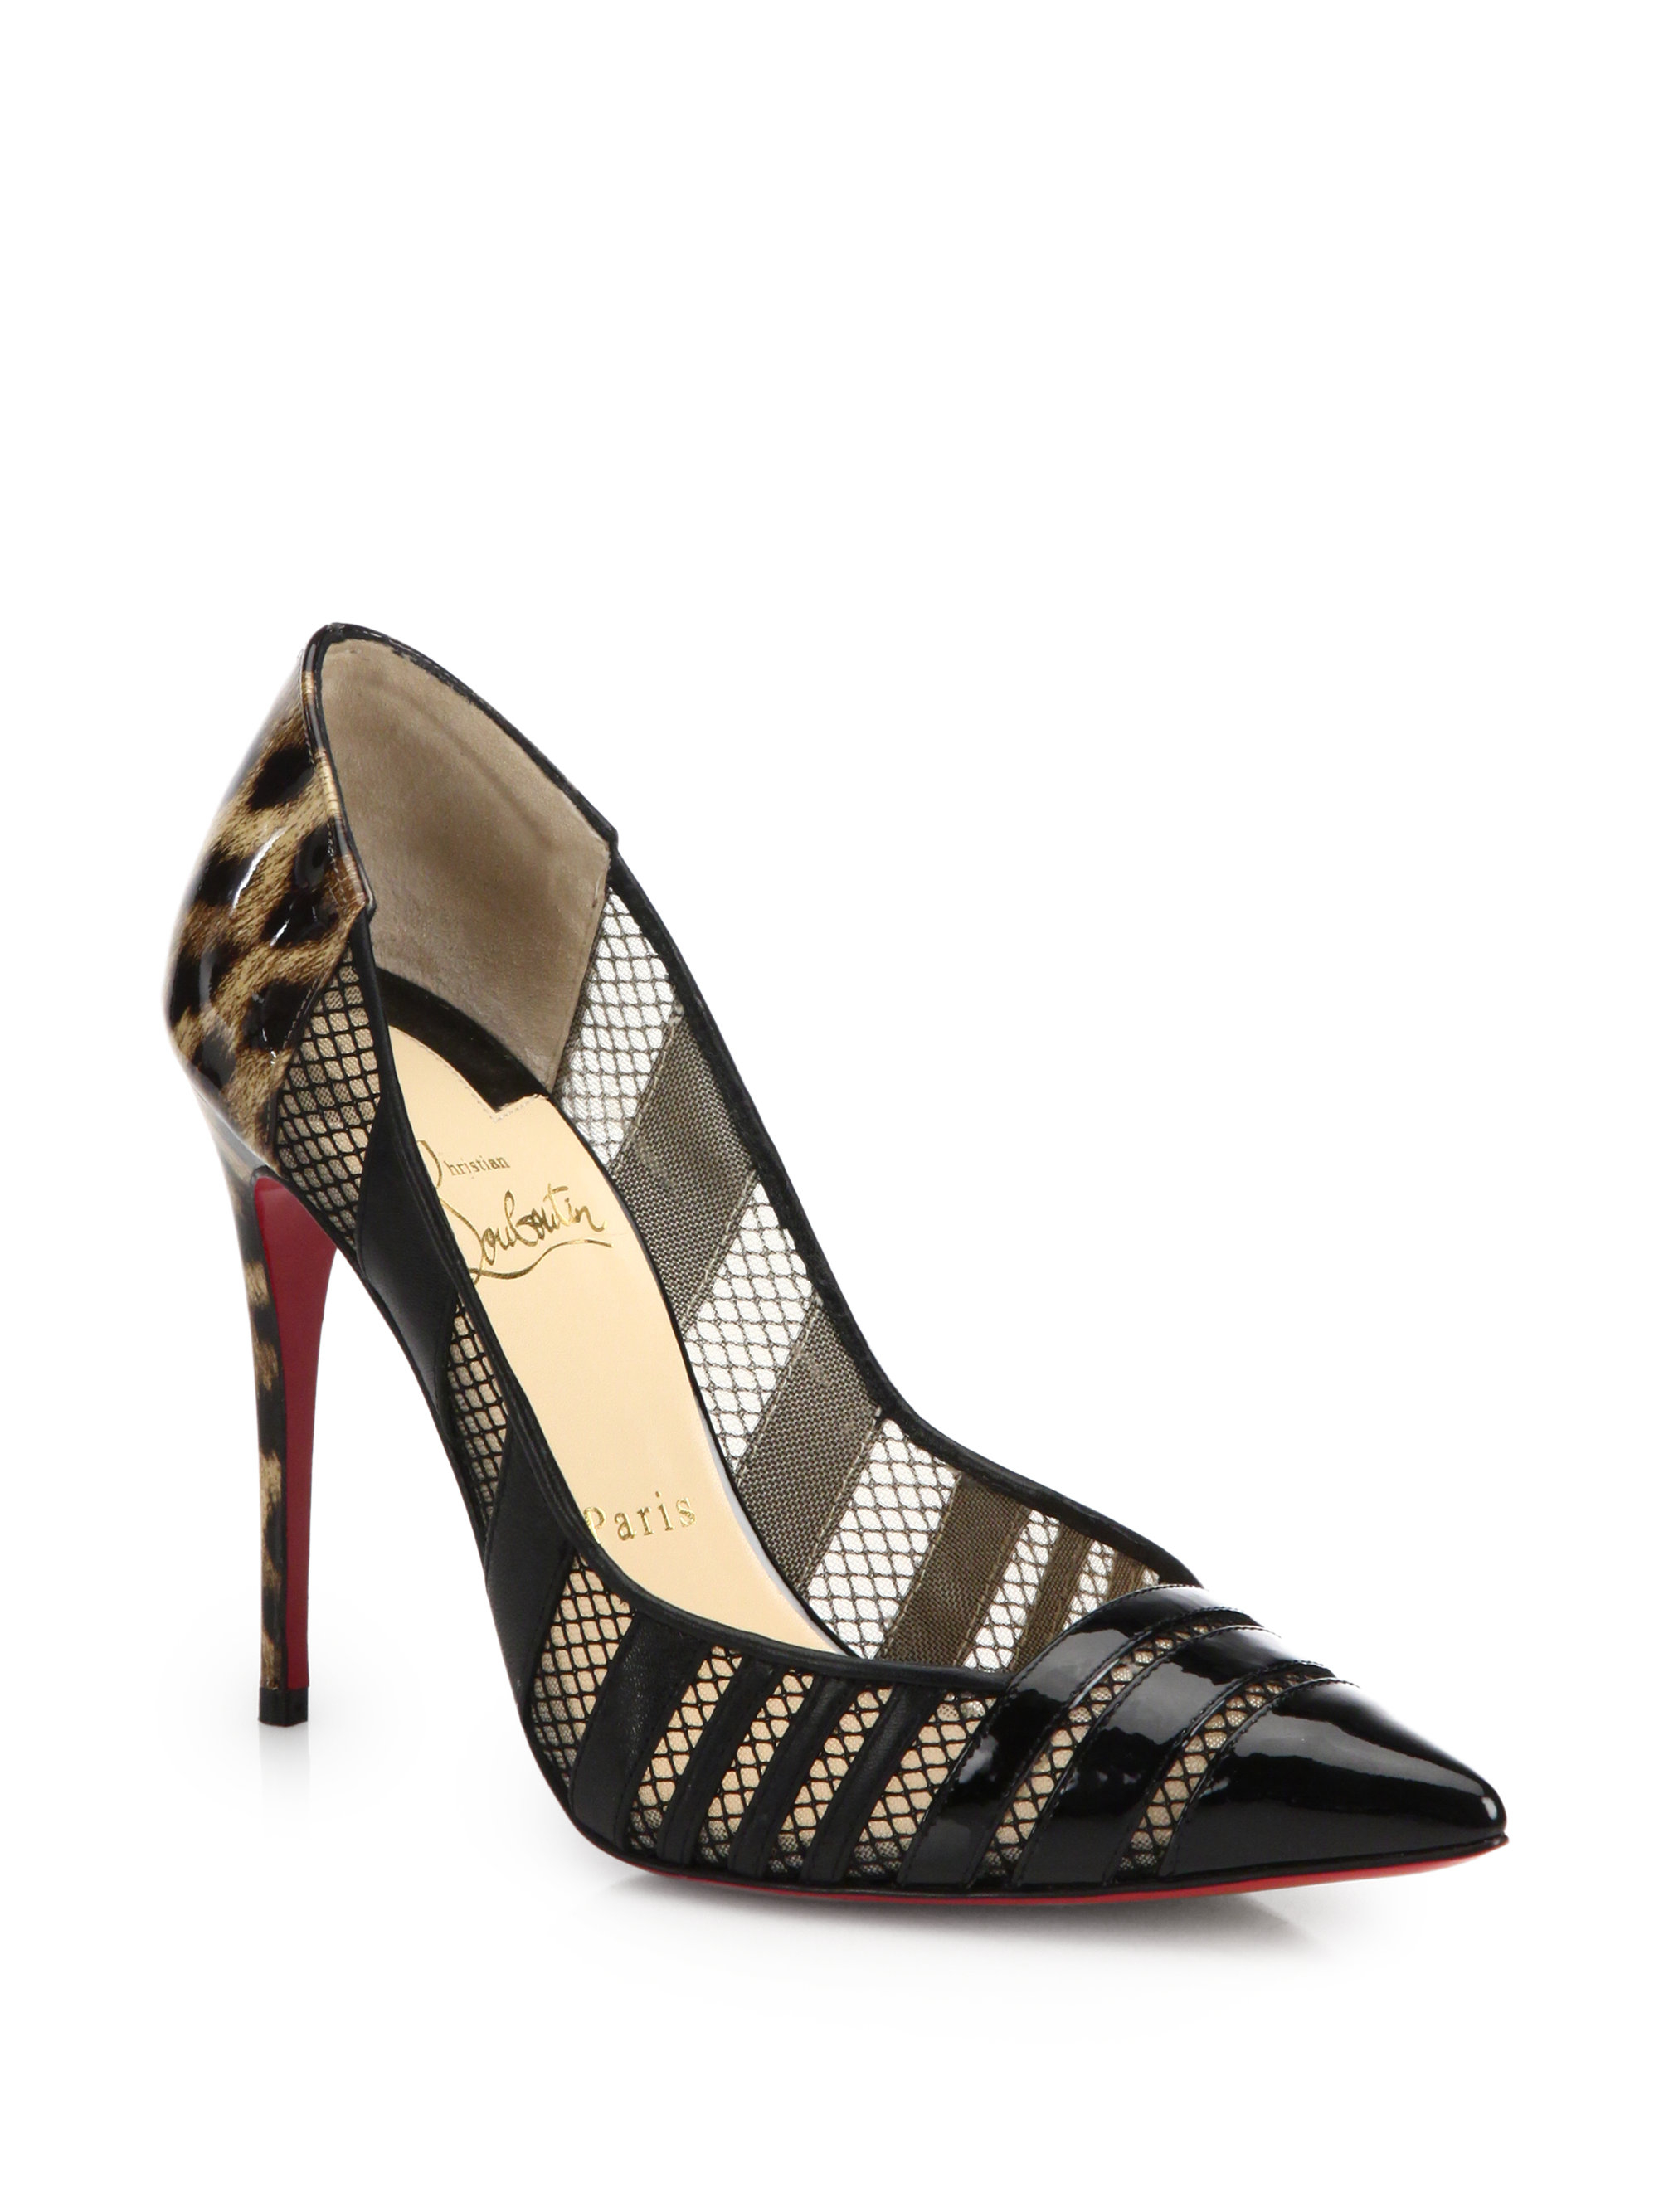 Christian louboutin Bandy Leopard Patent Leather \u0026amp; Mesh Pumps in ...